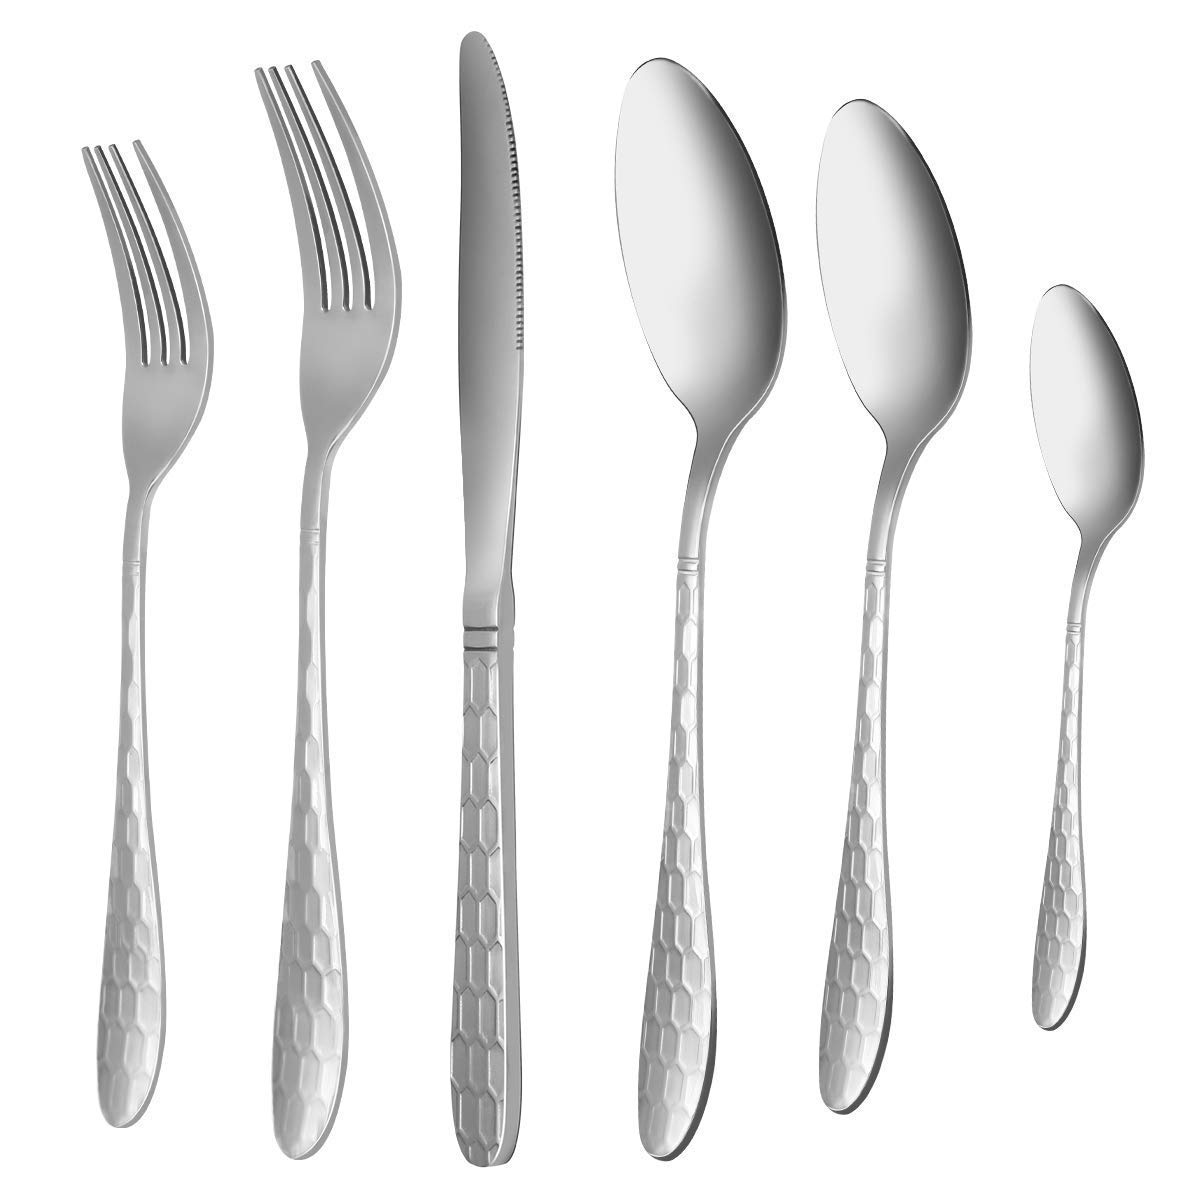 Silverware Flatware Cutlery Set, VERONES 24-Piece Stainless Steel Utensils Service for 4, Fit For Home Kitchen Hotel Restaurant Tableware Cutlery Set, Mirror Finished, Dishwasher Safe.